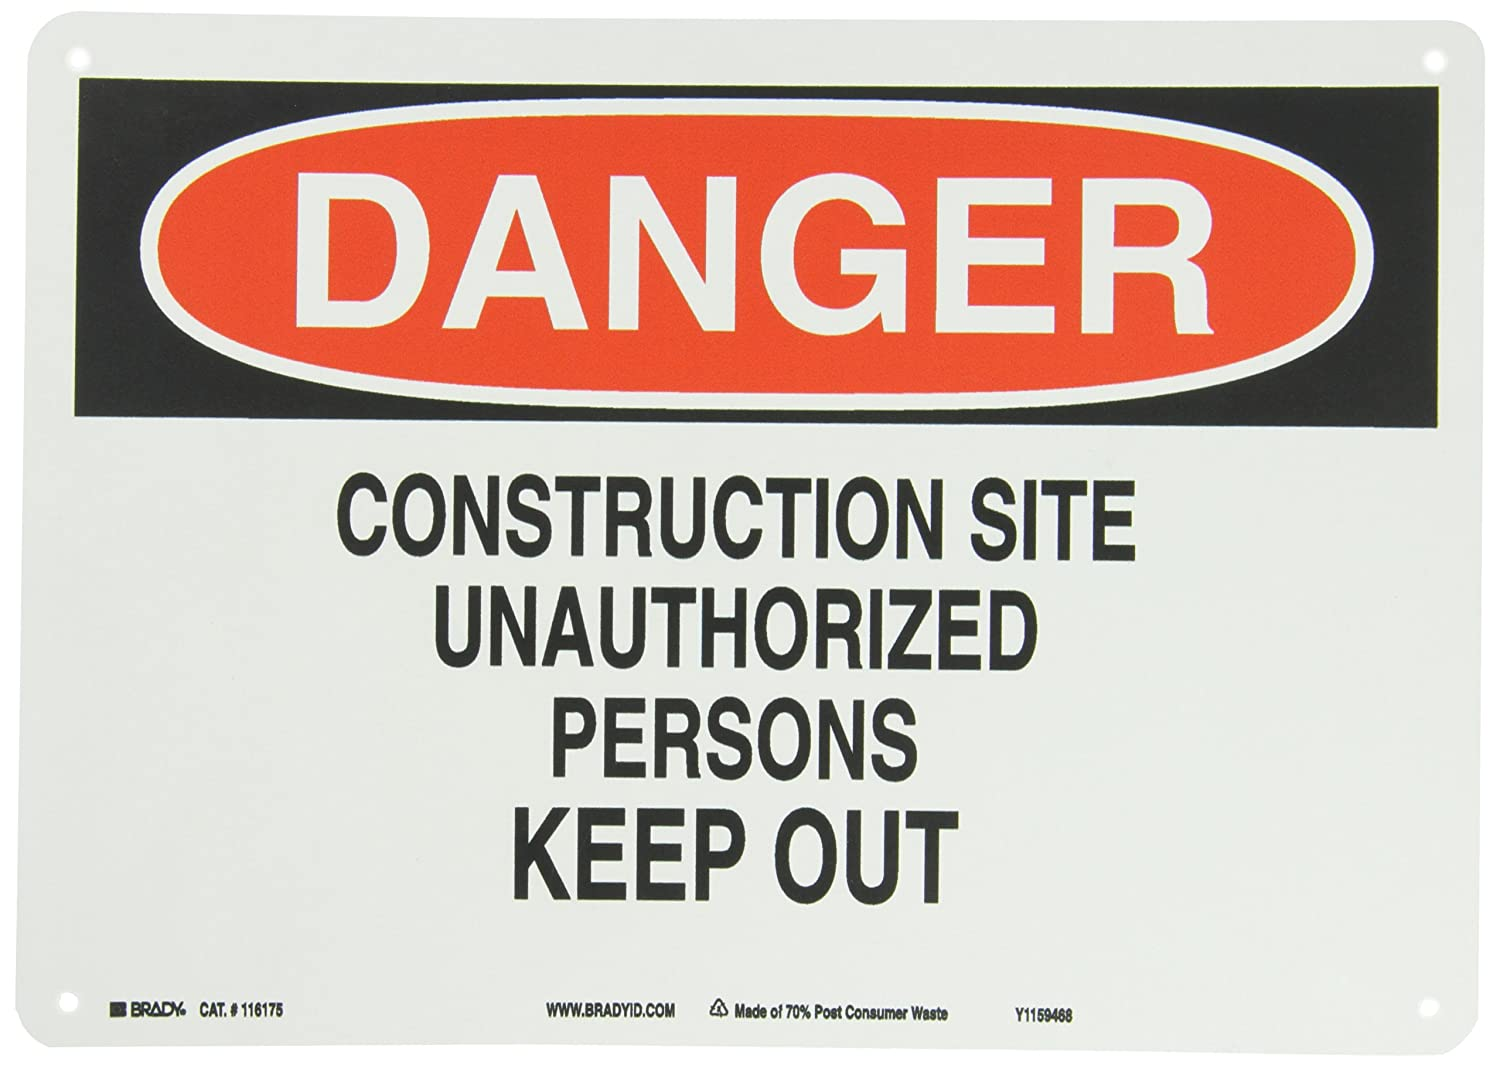 Red And Black On White Color Sustainable Safety Sign Brady 118231 14 Width x 10 Height B-558 Pressure Sensitive Legend Danger Construction Site Unauthorized Persons Keep Out Legend Danger Construction Site Unauthorized Persons Keep Out